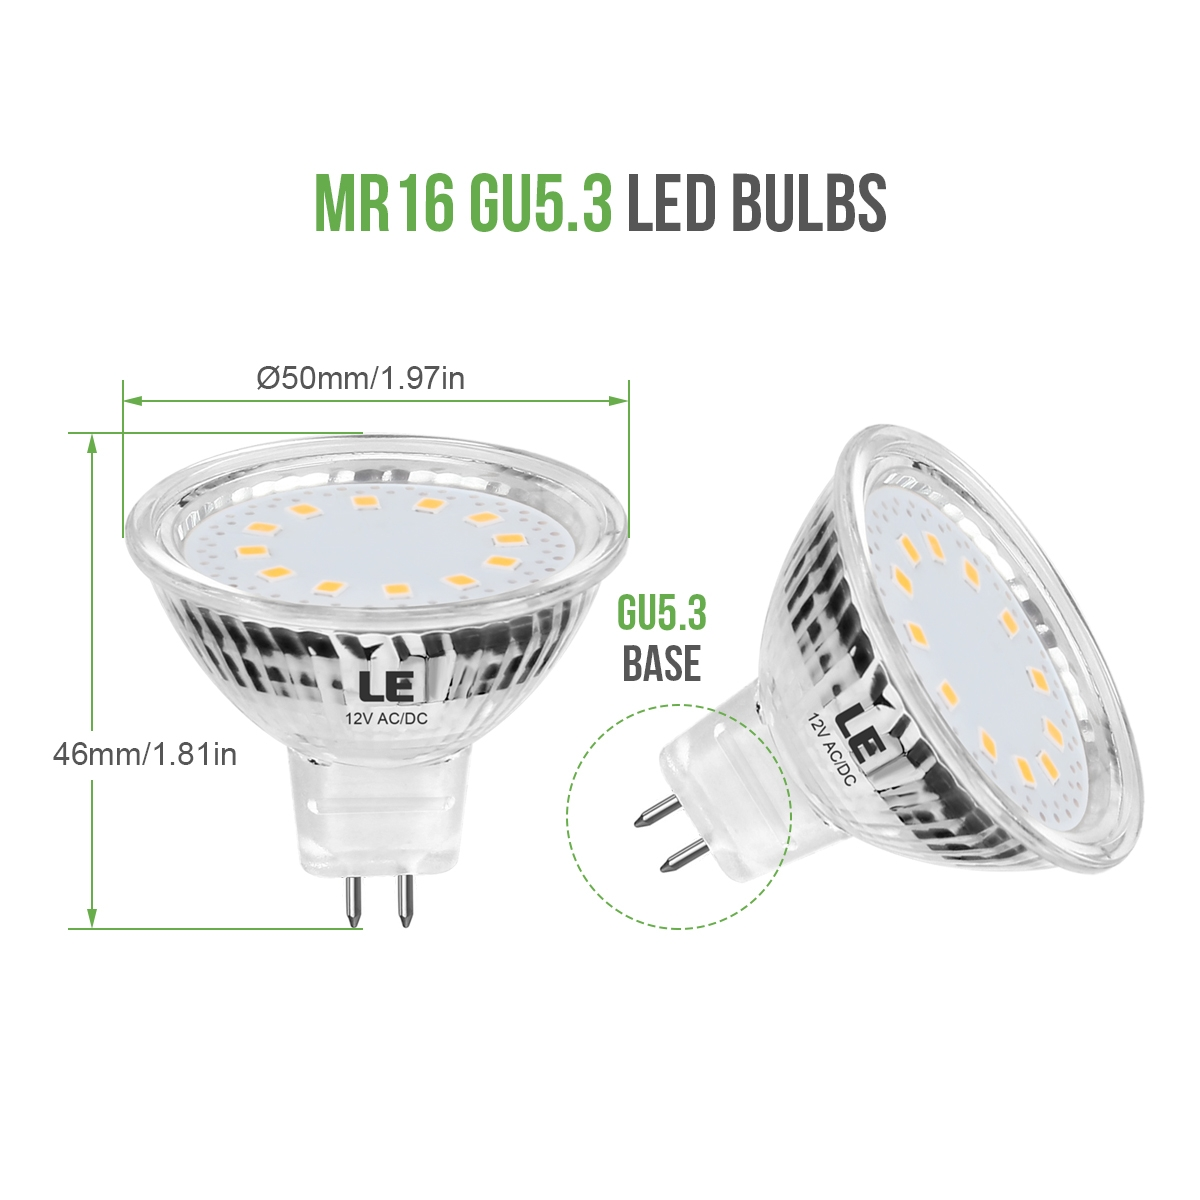 Led Lampen Gu 5.3 Lighting Ever Top Quality Led Fixtures